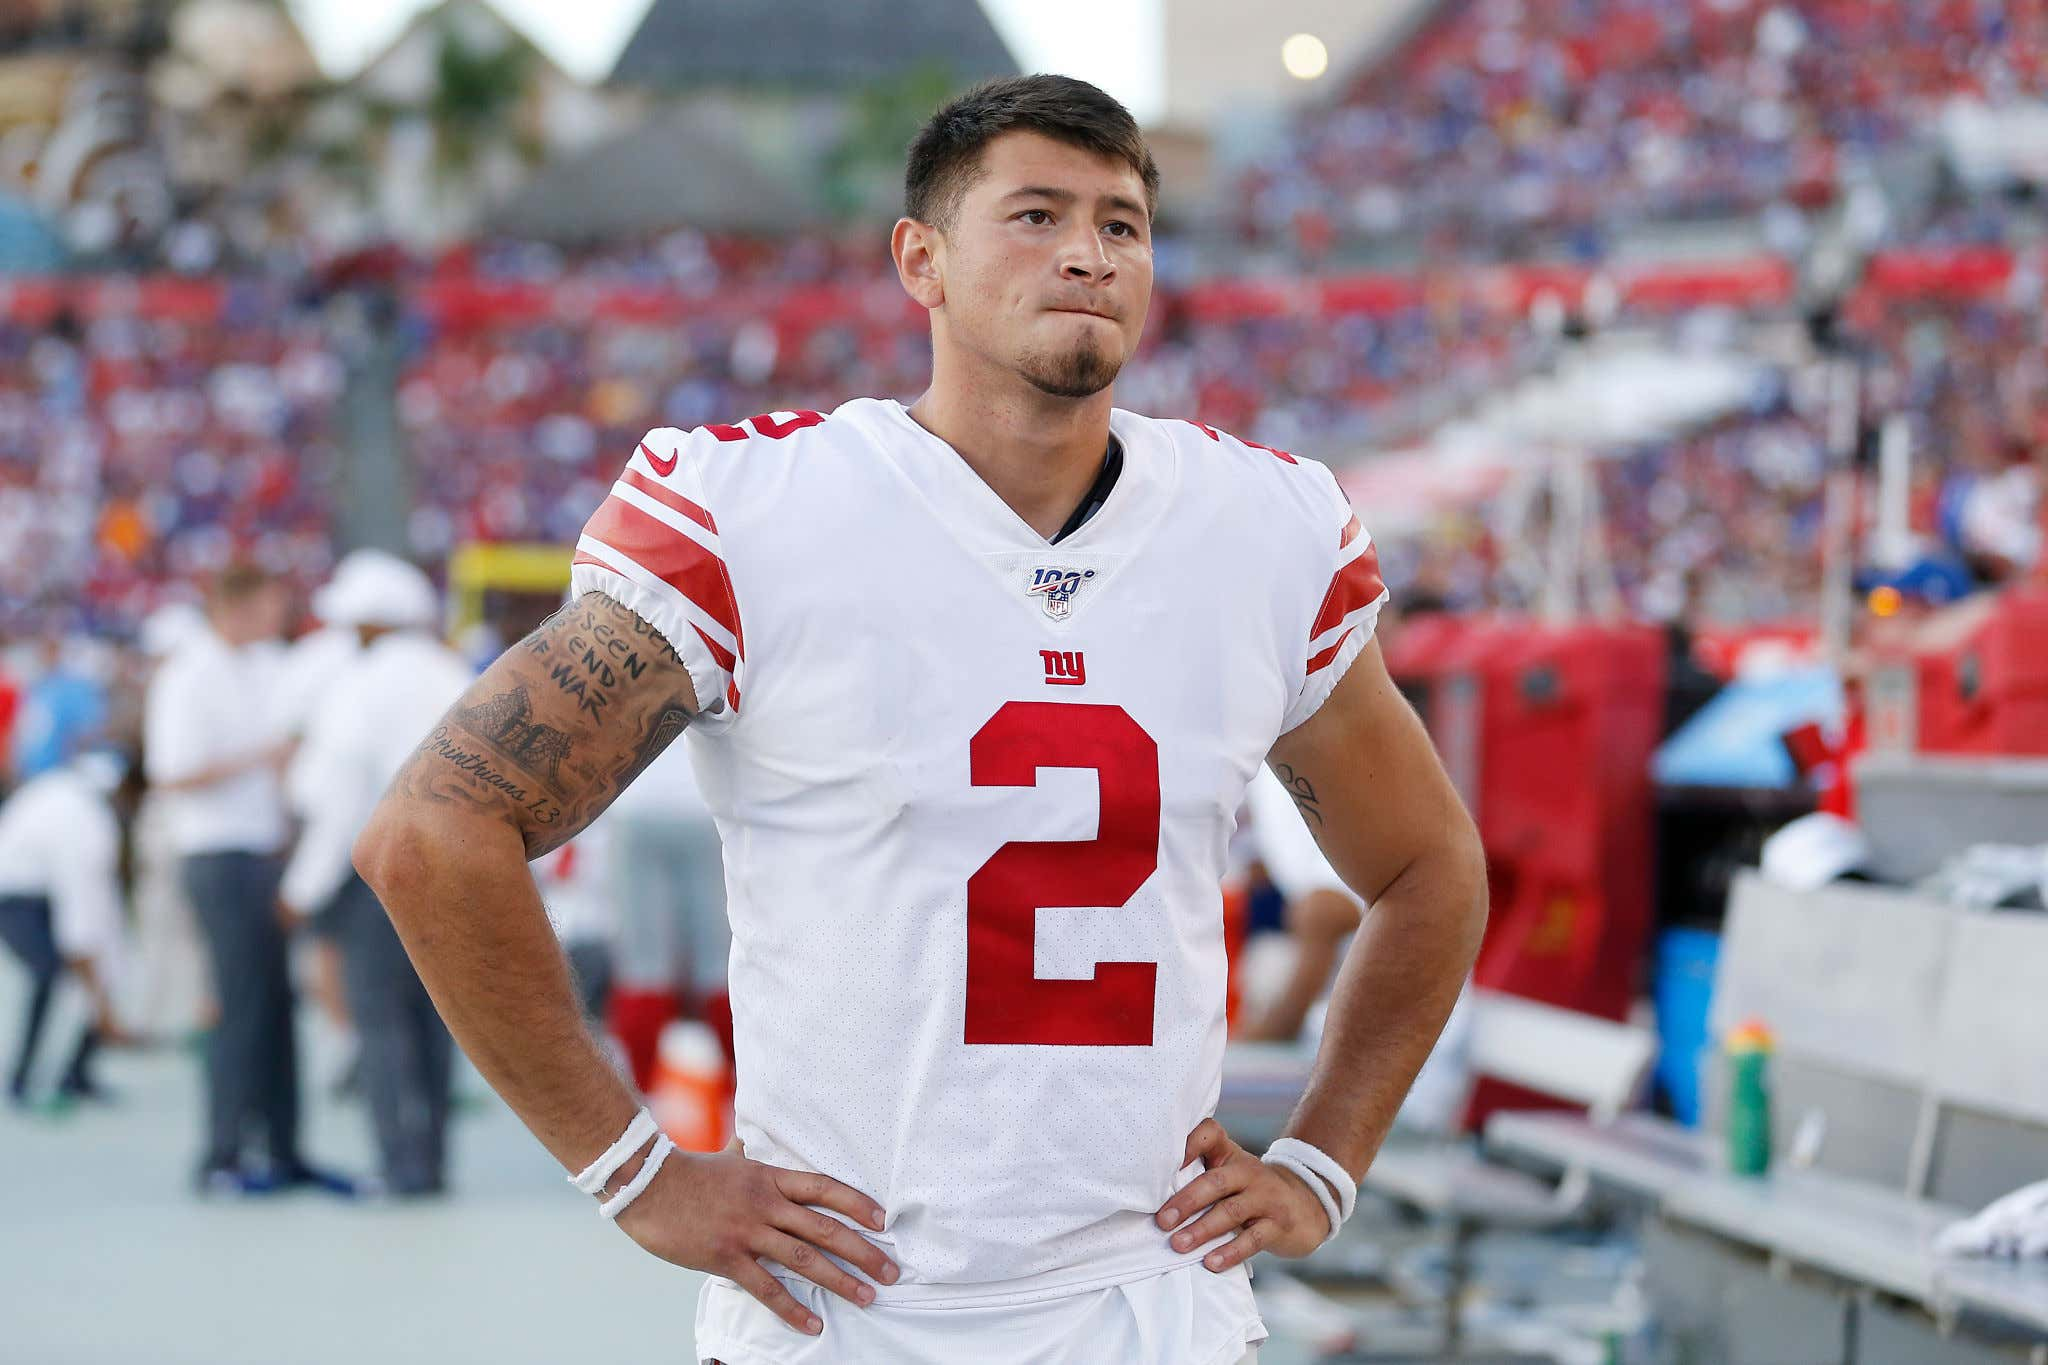 TAMPA, FLORIDA - SEPTEMBER 22:  Aldrick Rosas #2 of the New York Giants looks on against the Tampa Bay Buccaneers during the fourth quarter at Raymond James Stadium on September 22, 2019 in Tampa, Florida. (Photo by Michael Reaves/Getty Images)